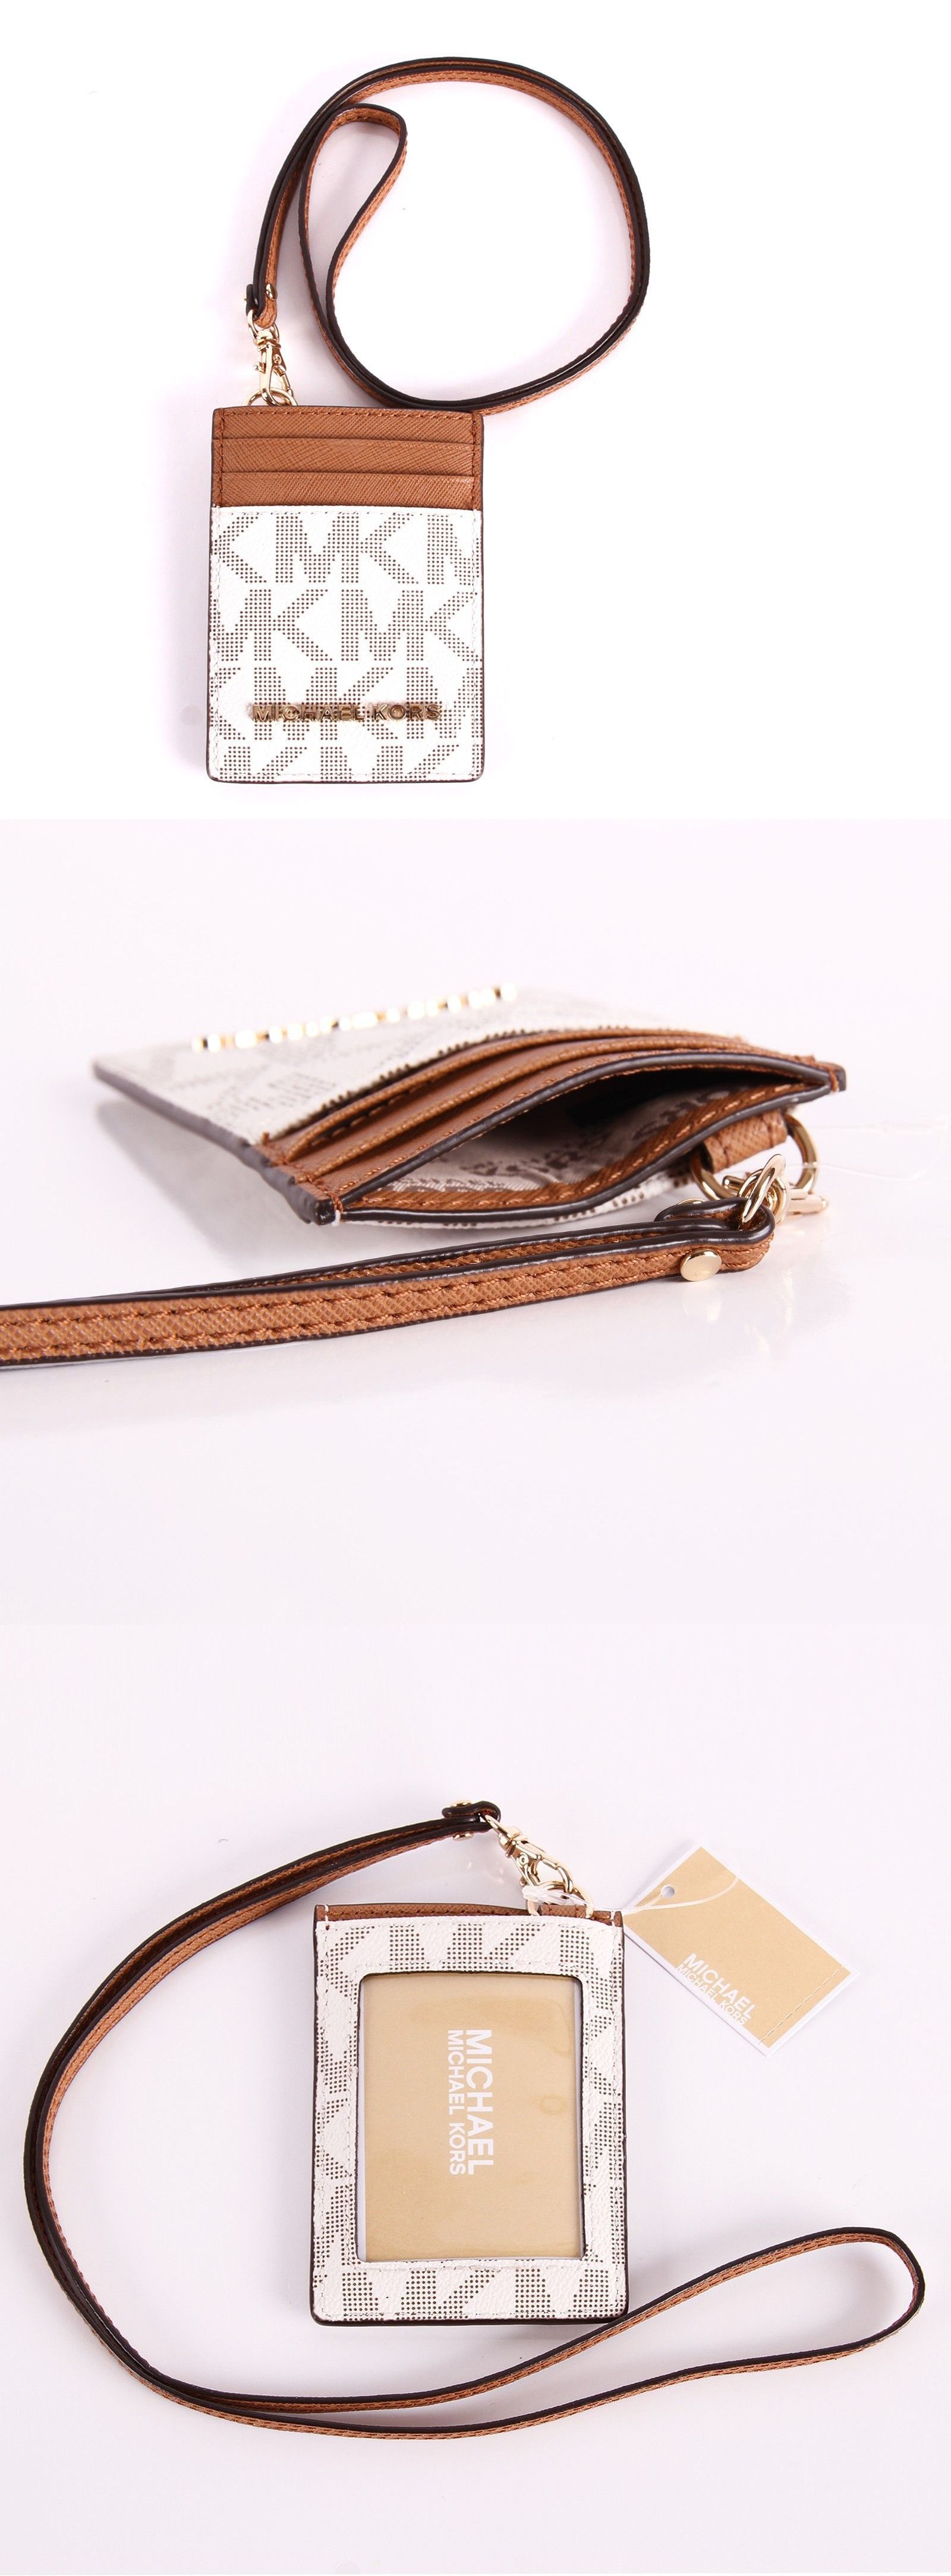 028ae6d177fb ID and Badge Holders 169287  New Michael Kors Jet Set Travel Pvc Lanyard Id  Card Case In Vanilla Acorn Mak 2 -  BUY IT NOW ONLY   44.99 on eBay!